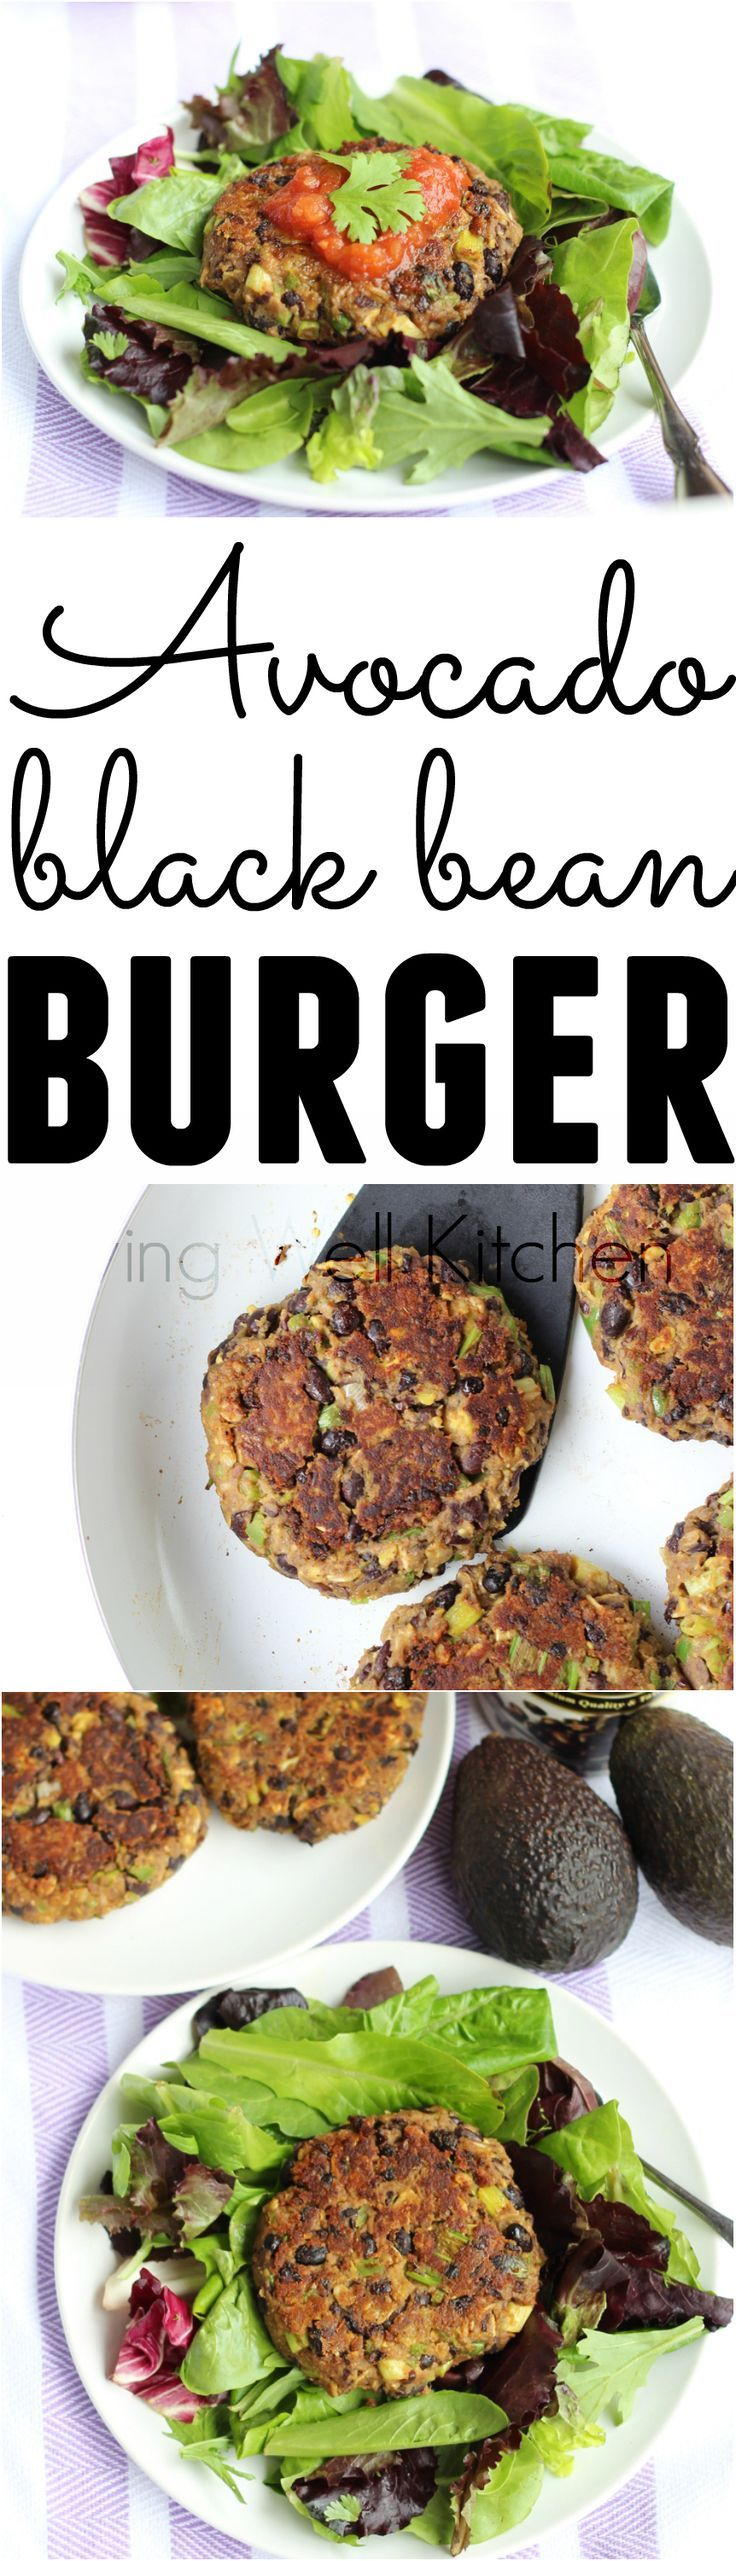 These tasty vegan avocado black bean burgers are delicious, filling, and easy on your wallet. This Avocado Black Bean Burger recipe is vegan and gluten free. You can make them ahead of time for lunch or dinner. Great idea for a meatless meal.